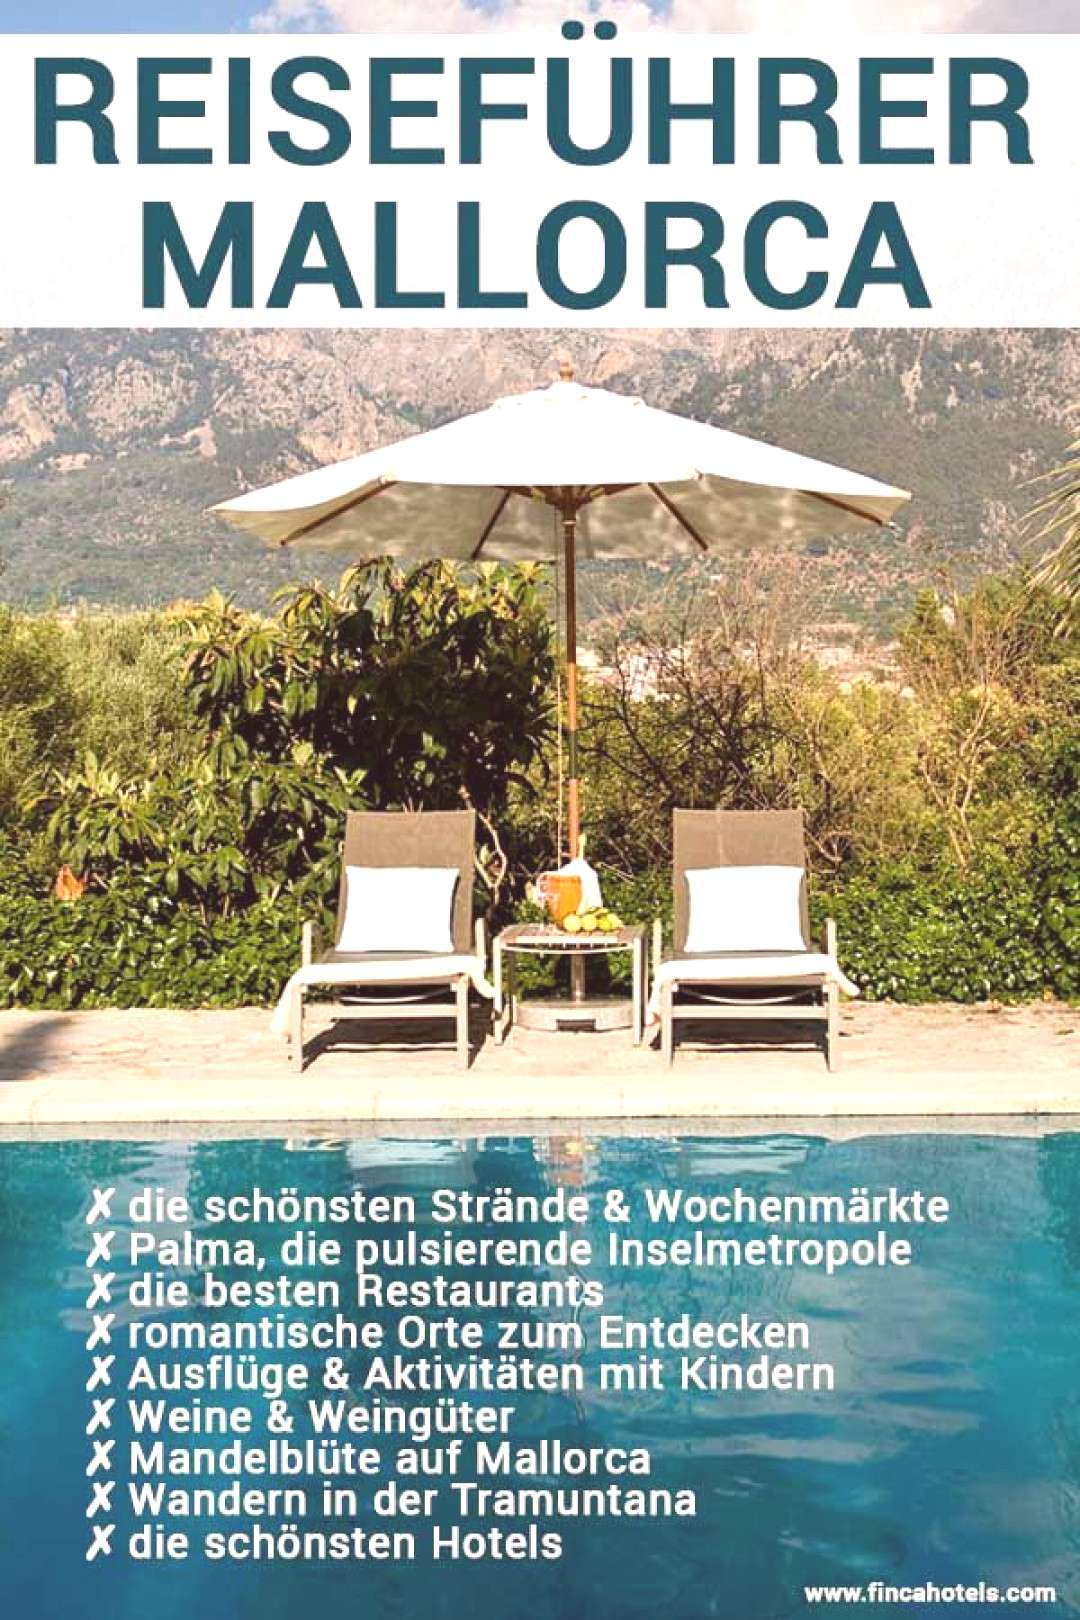 Holidays in Mallorca - with our guide you will find the best restaurants ... -  Holidays in Mallorc